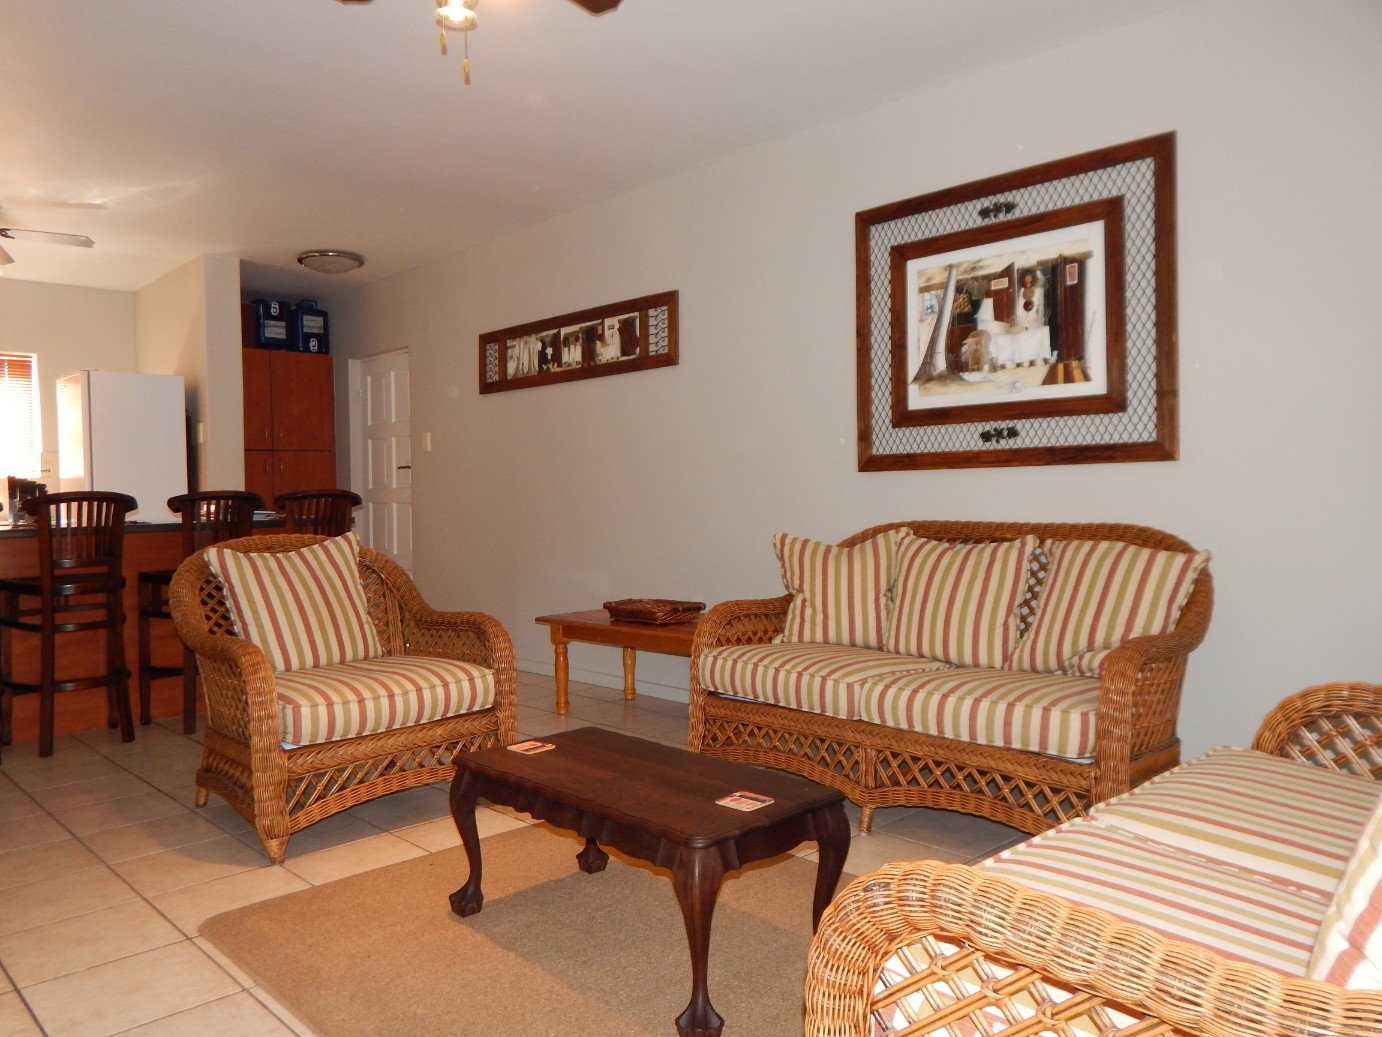 3 Bedroom Apartment for sale in Diaz Beach ENT0080239 : photo#1